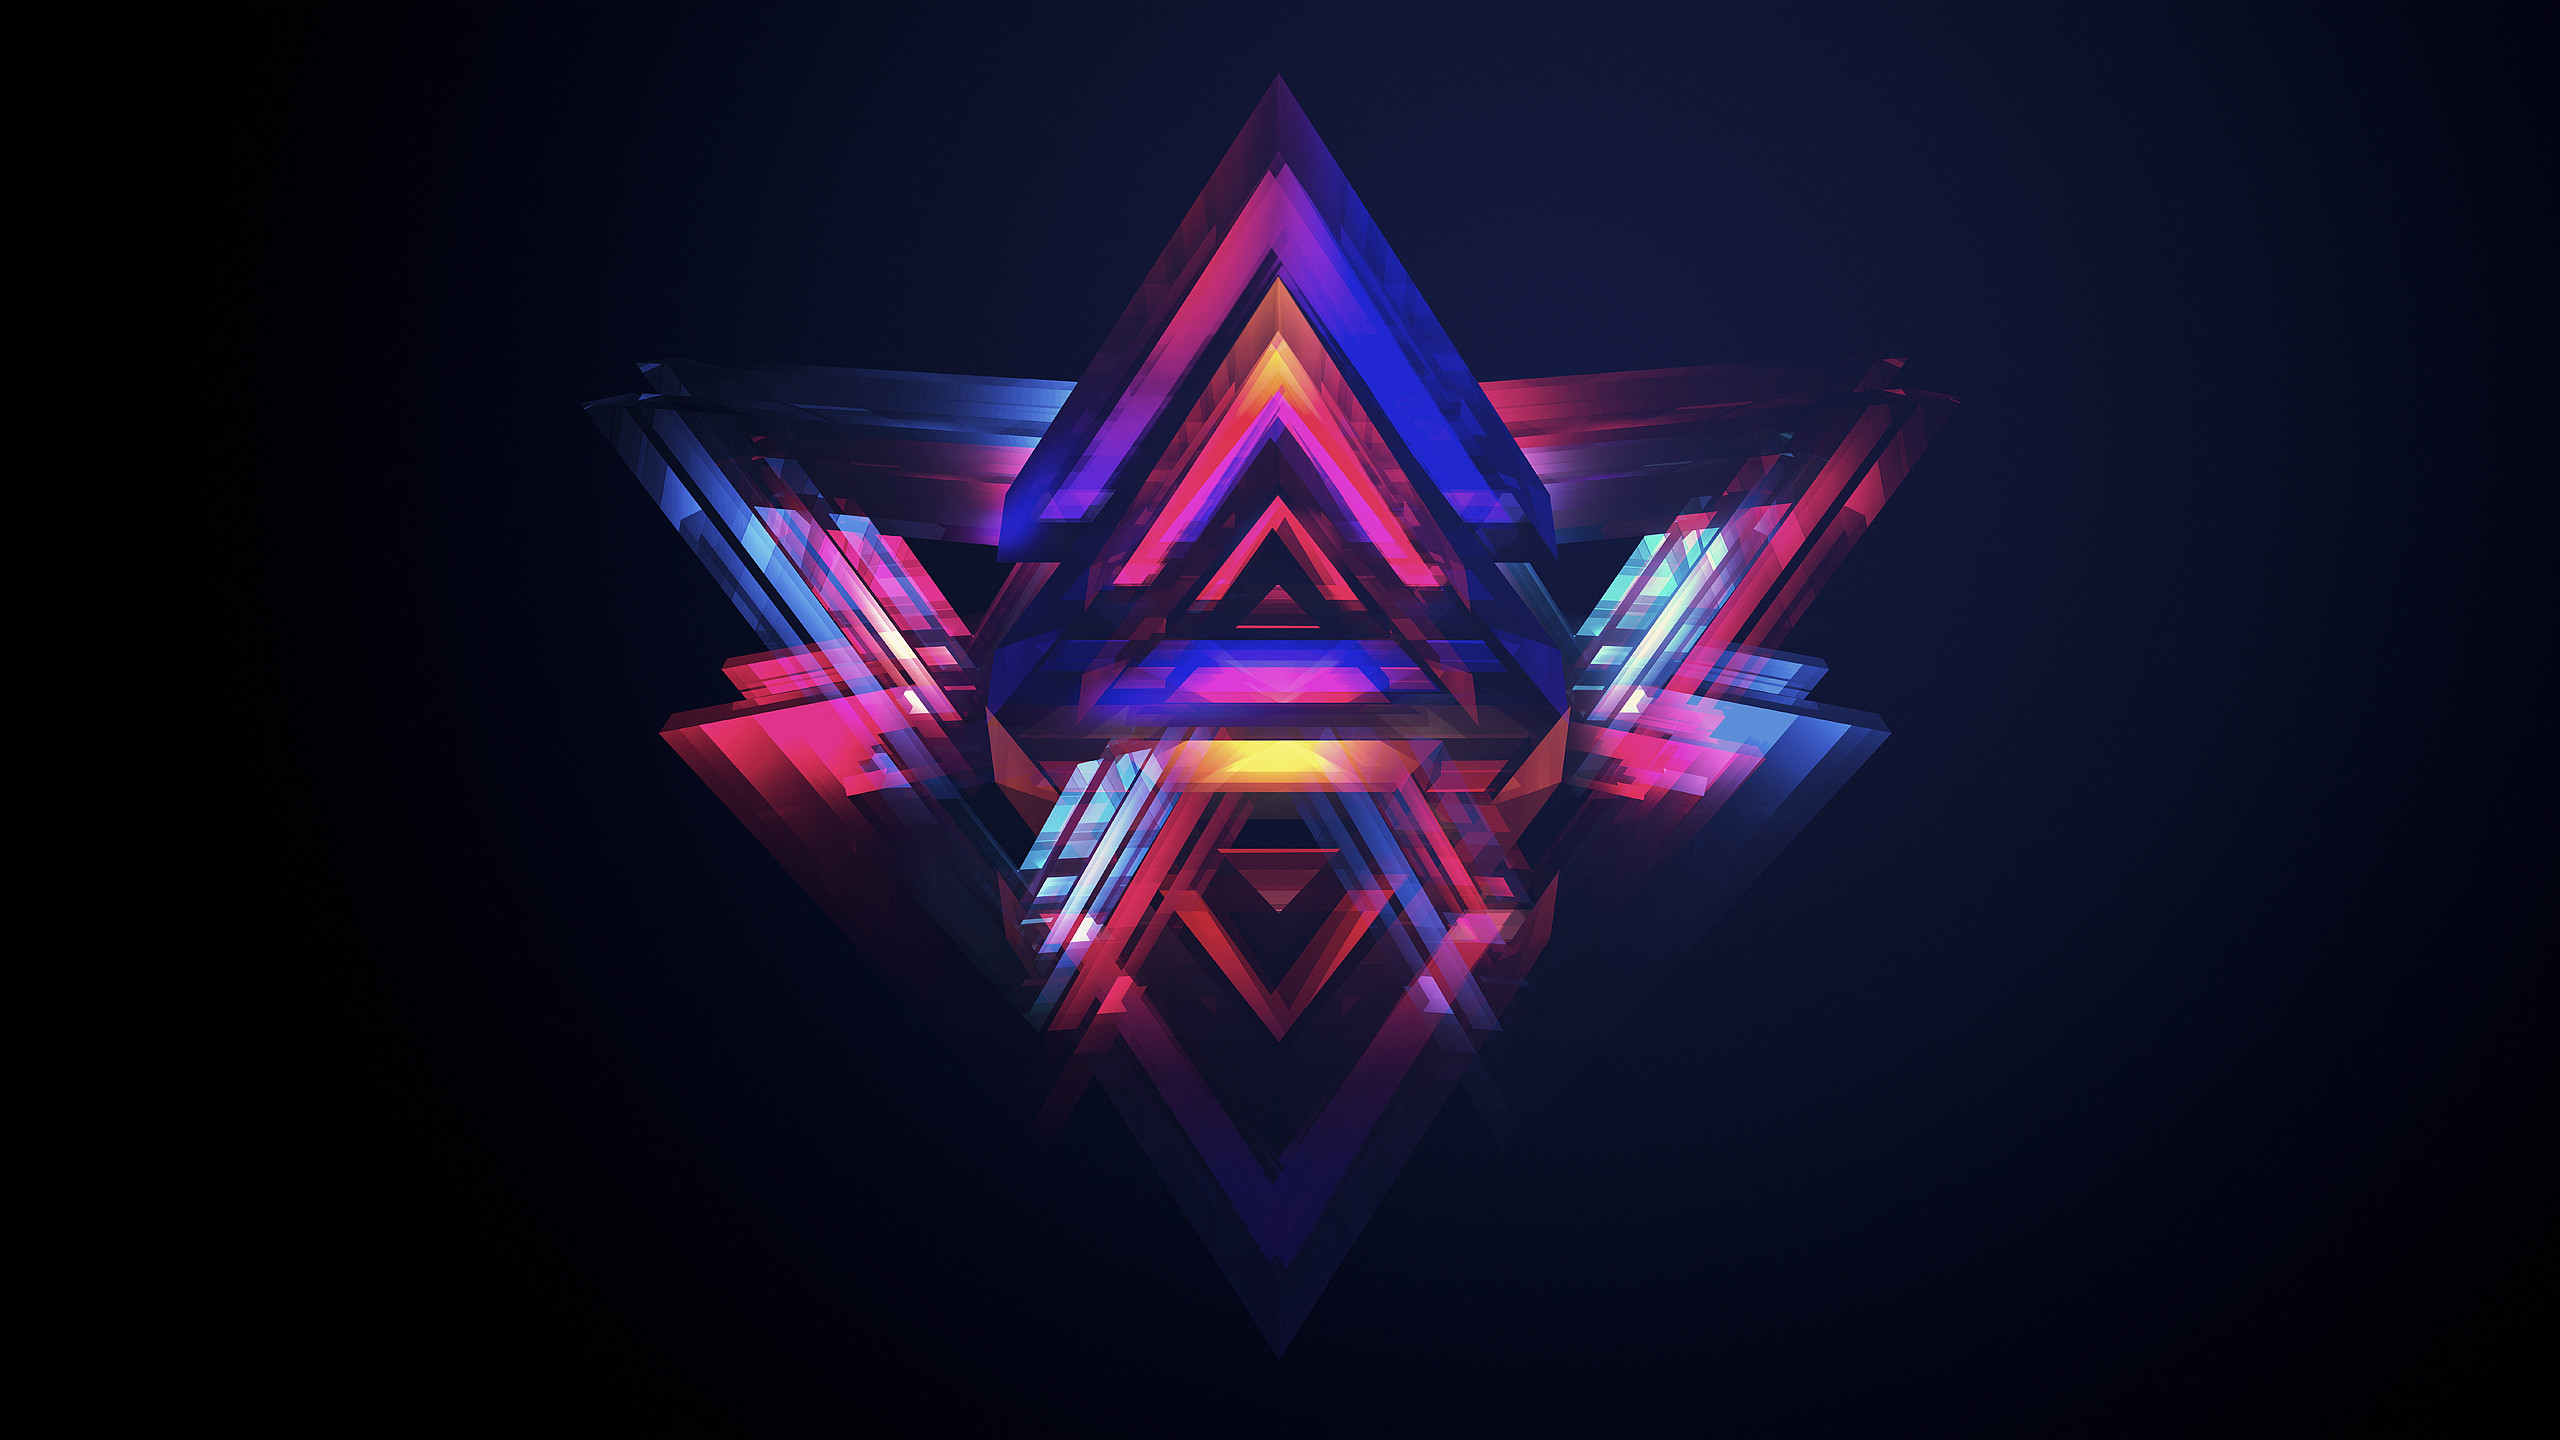 Abstract Cool 3D Colorful Shape Free Wallpaper HD.jpeg (2560×1440)   Game  Color / Line Design   Pinterest   Wallpaper, 3d and Low poly